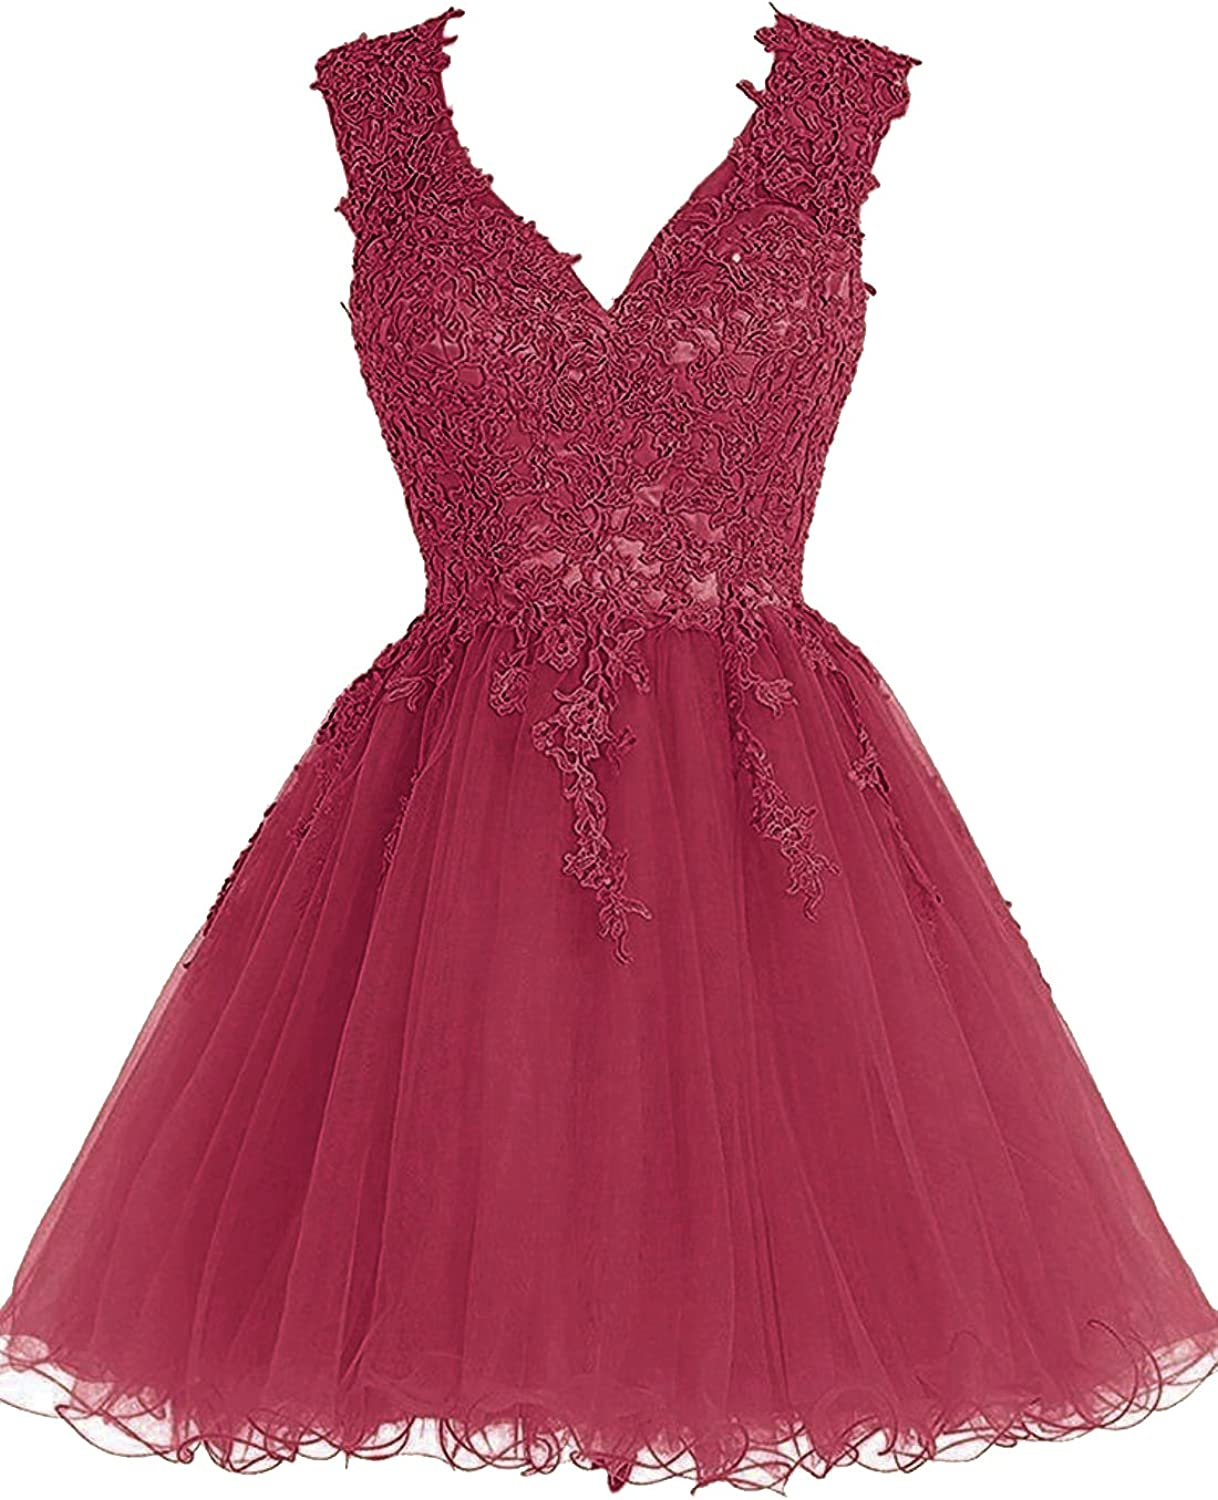 Homecoming Dress Short Cocktail Dress Lace Homecoming Dress Tulle Appliques  Prom Dresses V Neck